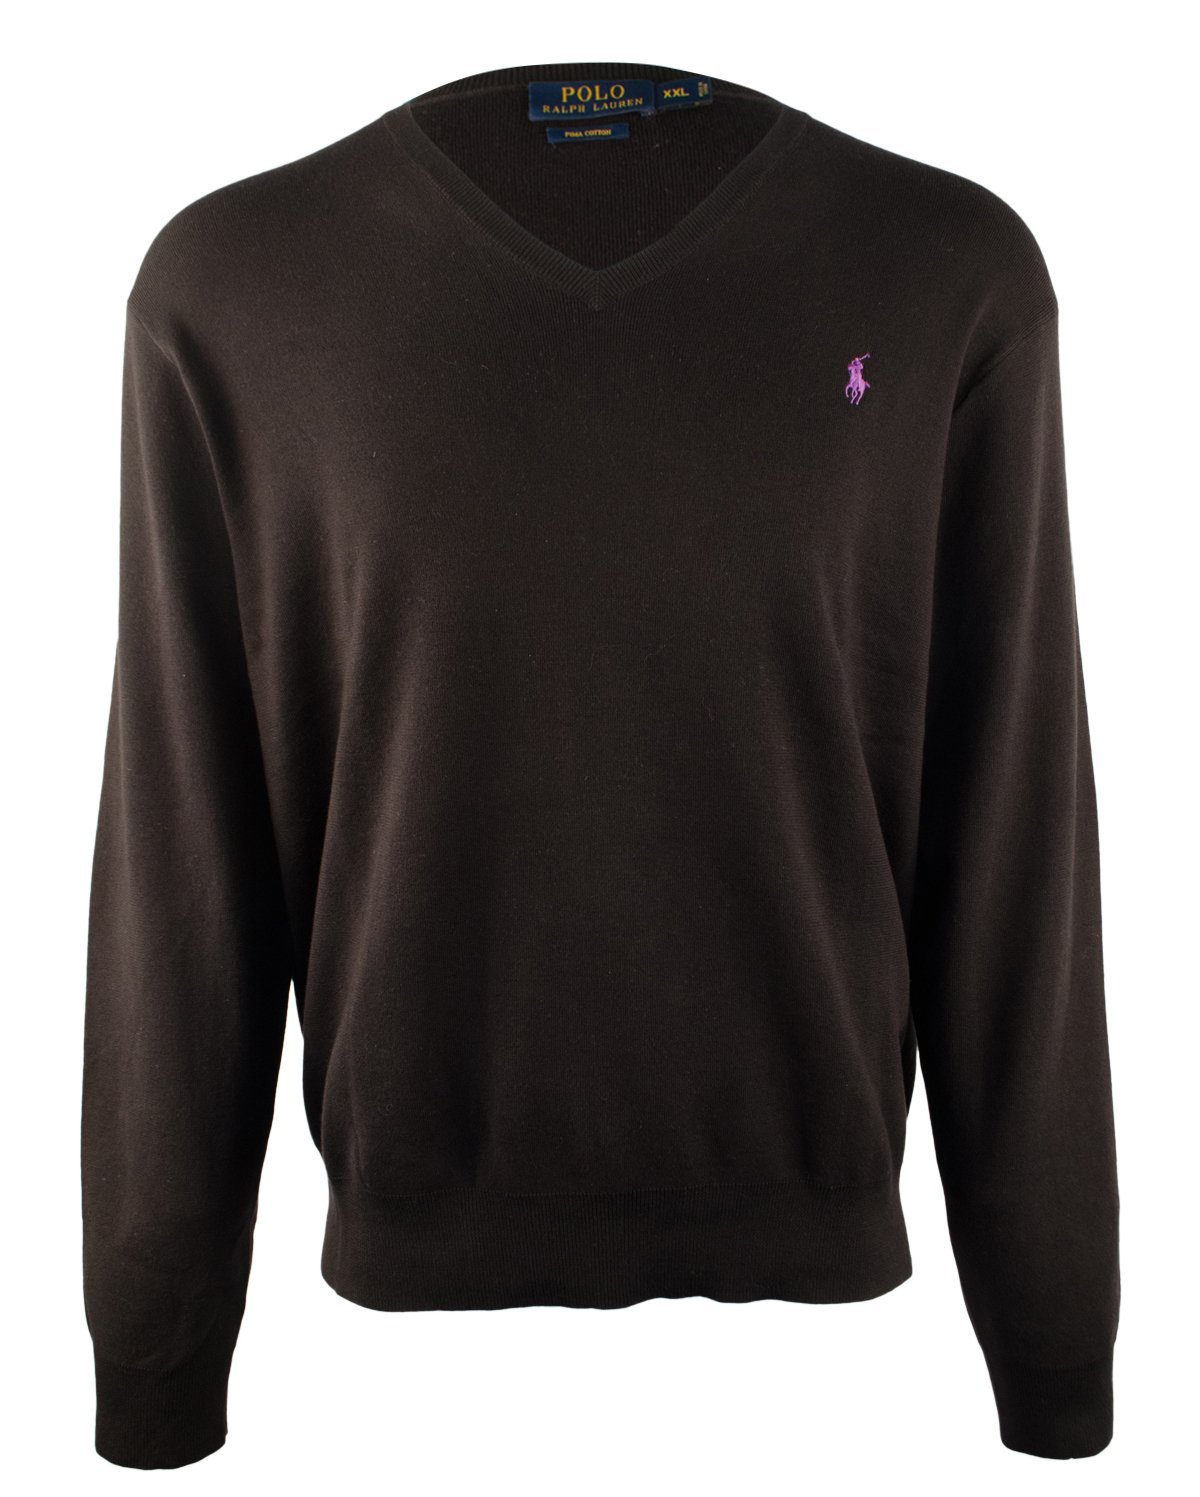 Polo Ralph Lauren Mens Ribbed Long Sleeves V-Neck Sweater Black M